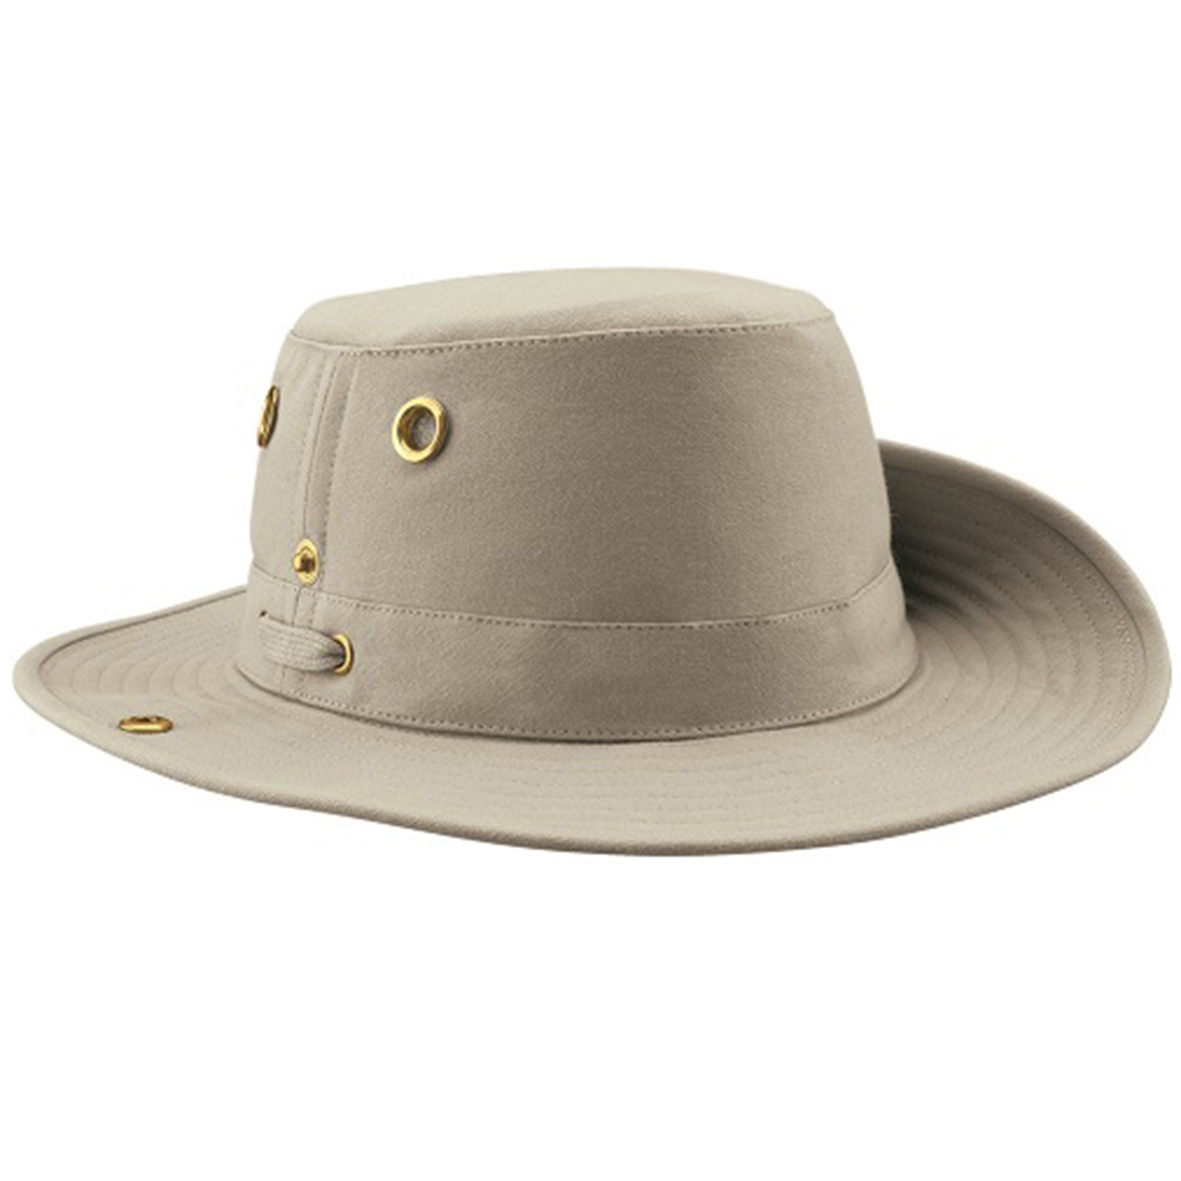 Tilley Endurables - Buy Online at The Hat Place 46ddb154e52